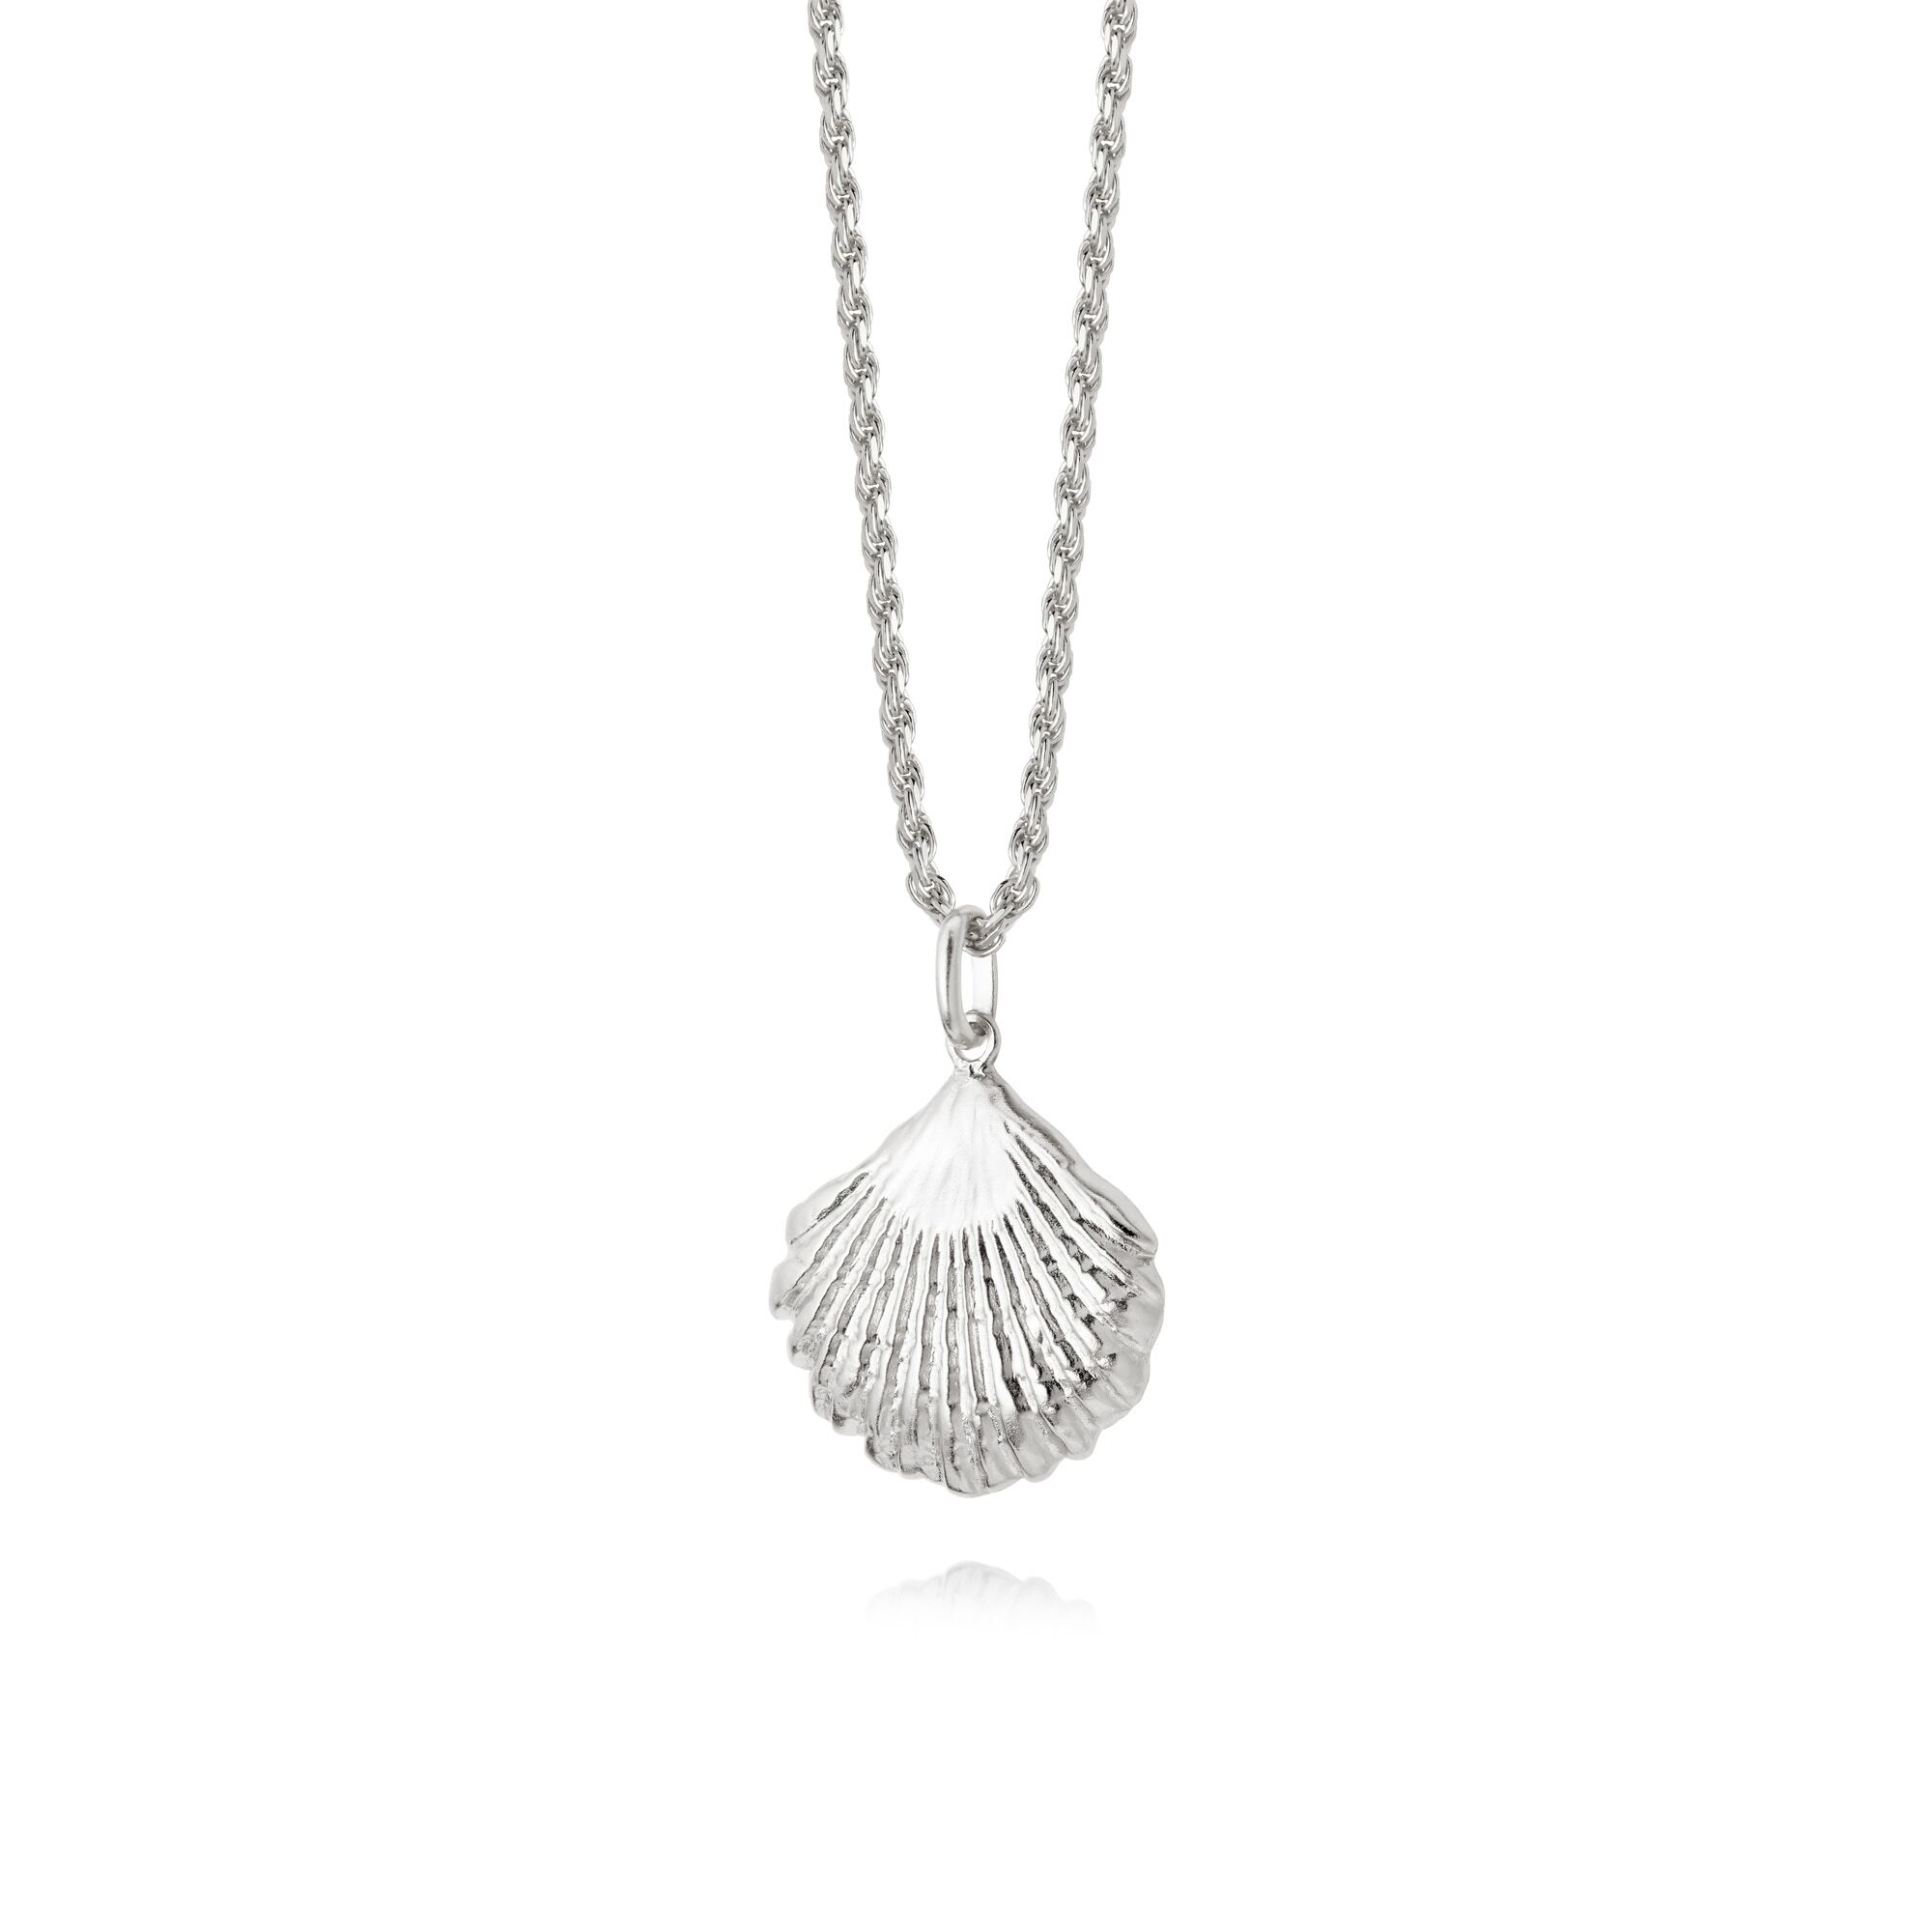 LARGE SHELL NECKLACE SILVER